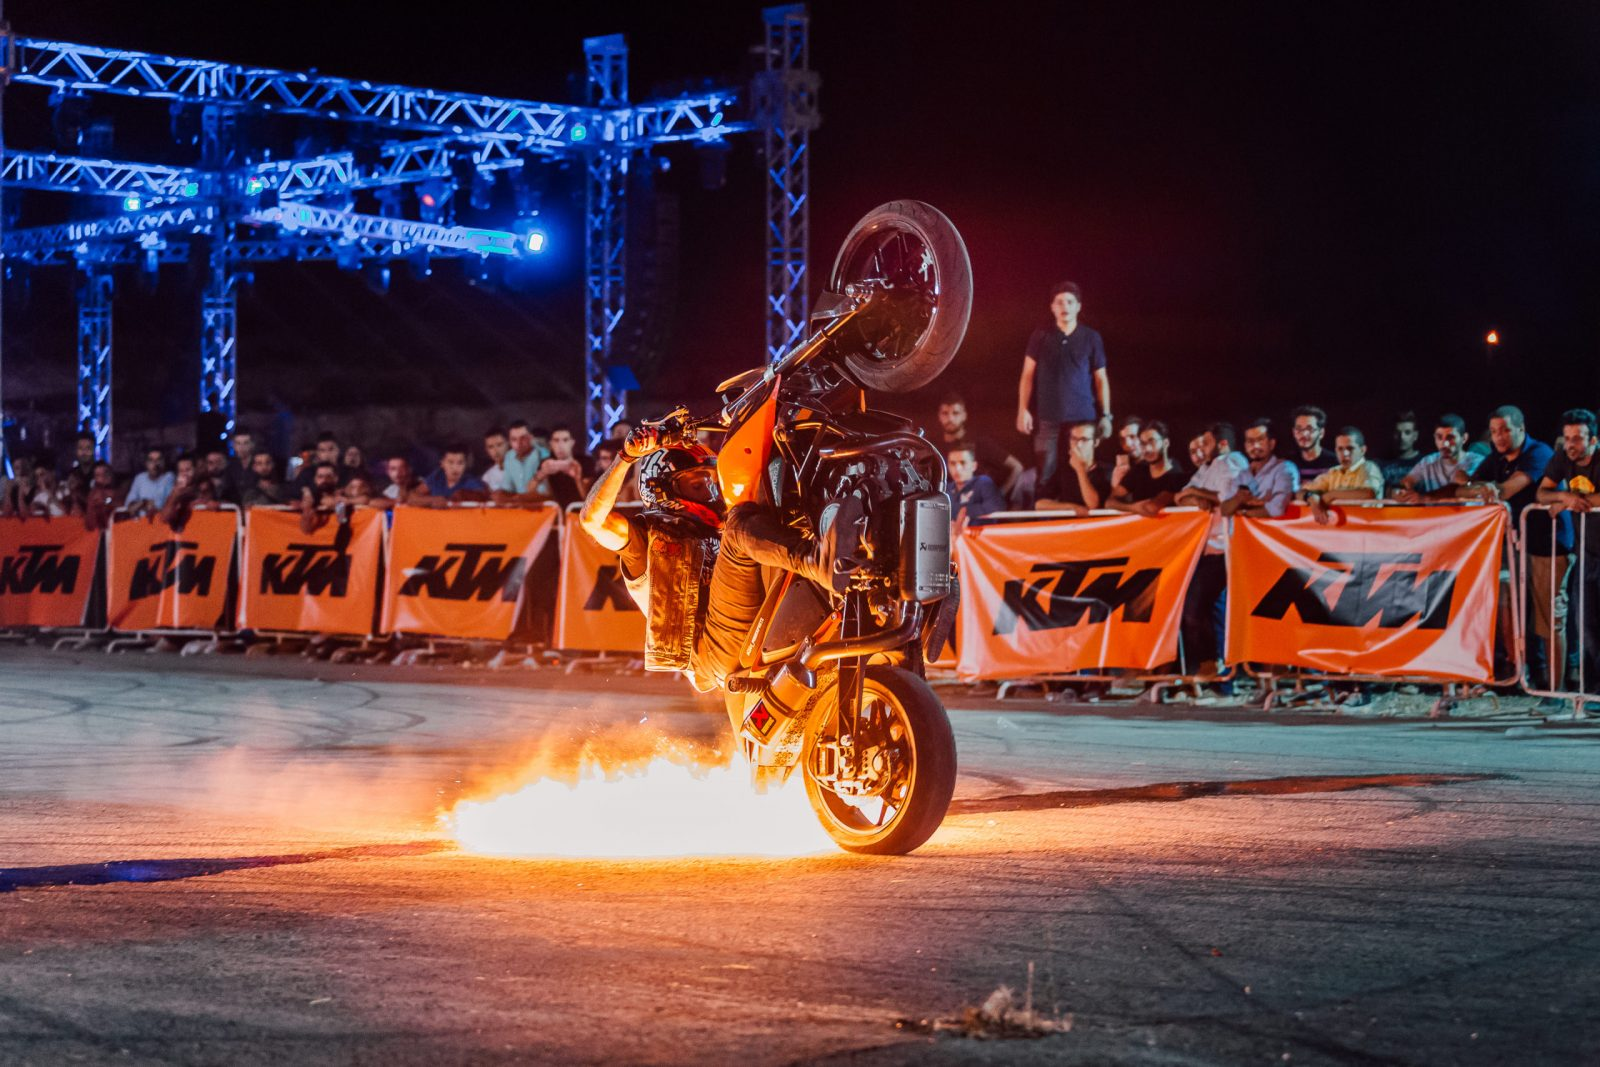 Rok Bagoros coming to Nepal, KTM Roaring Gears - 1st Orange Stunt Championship